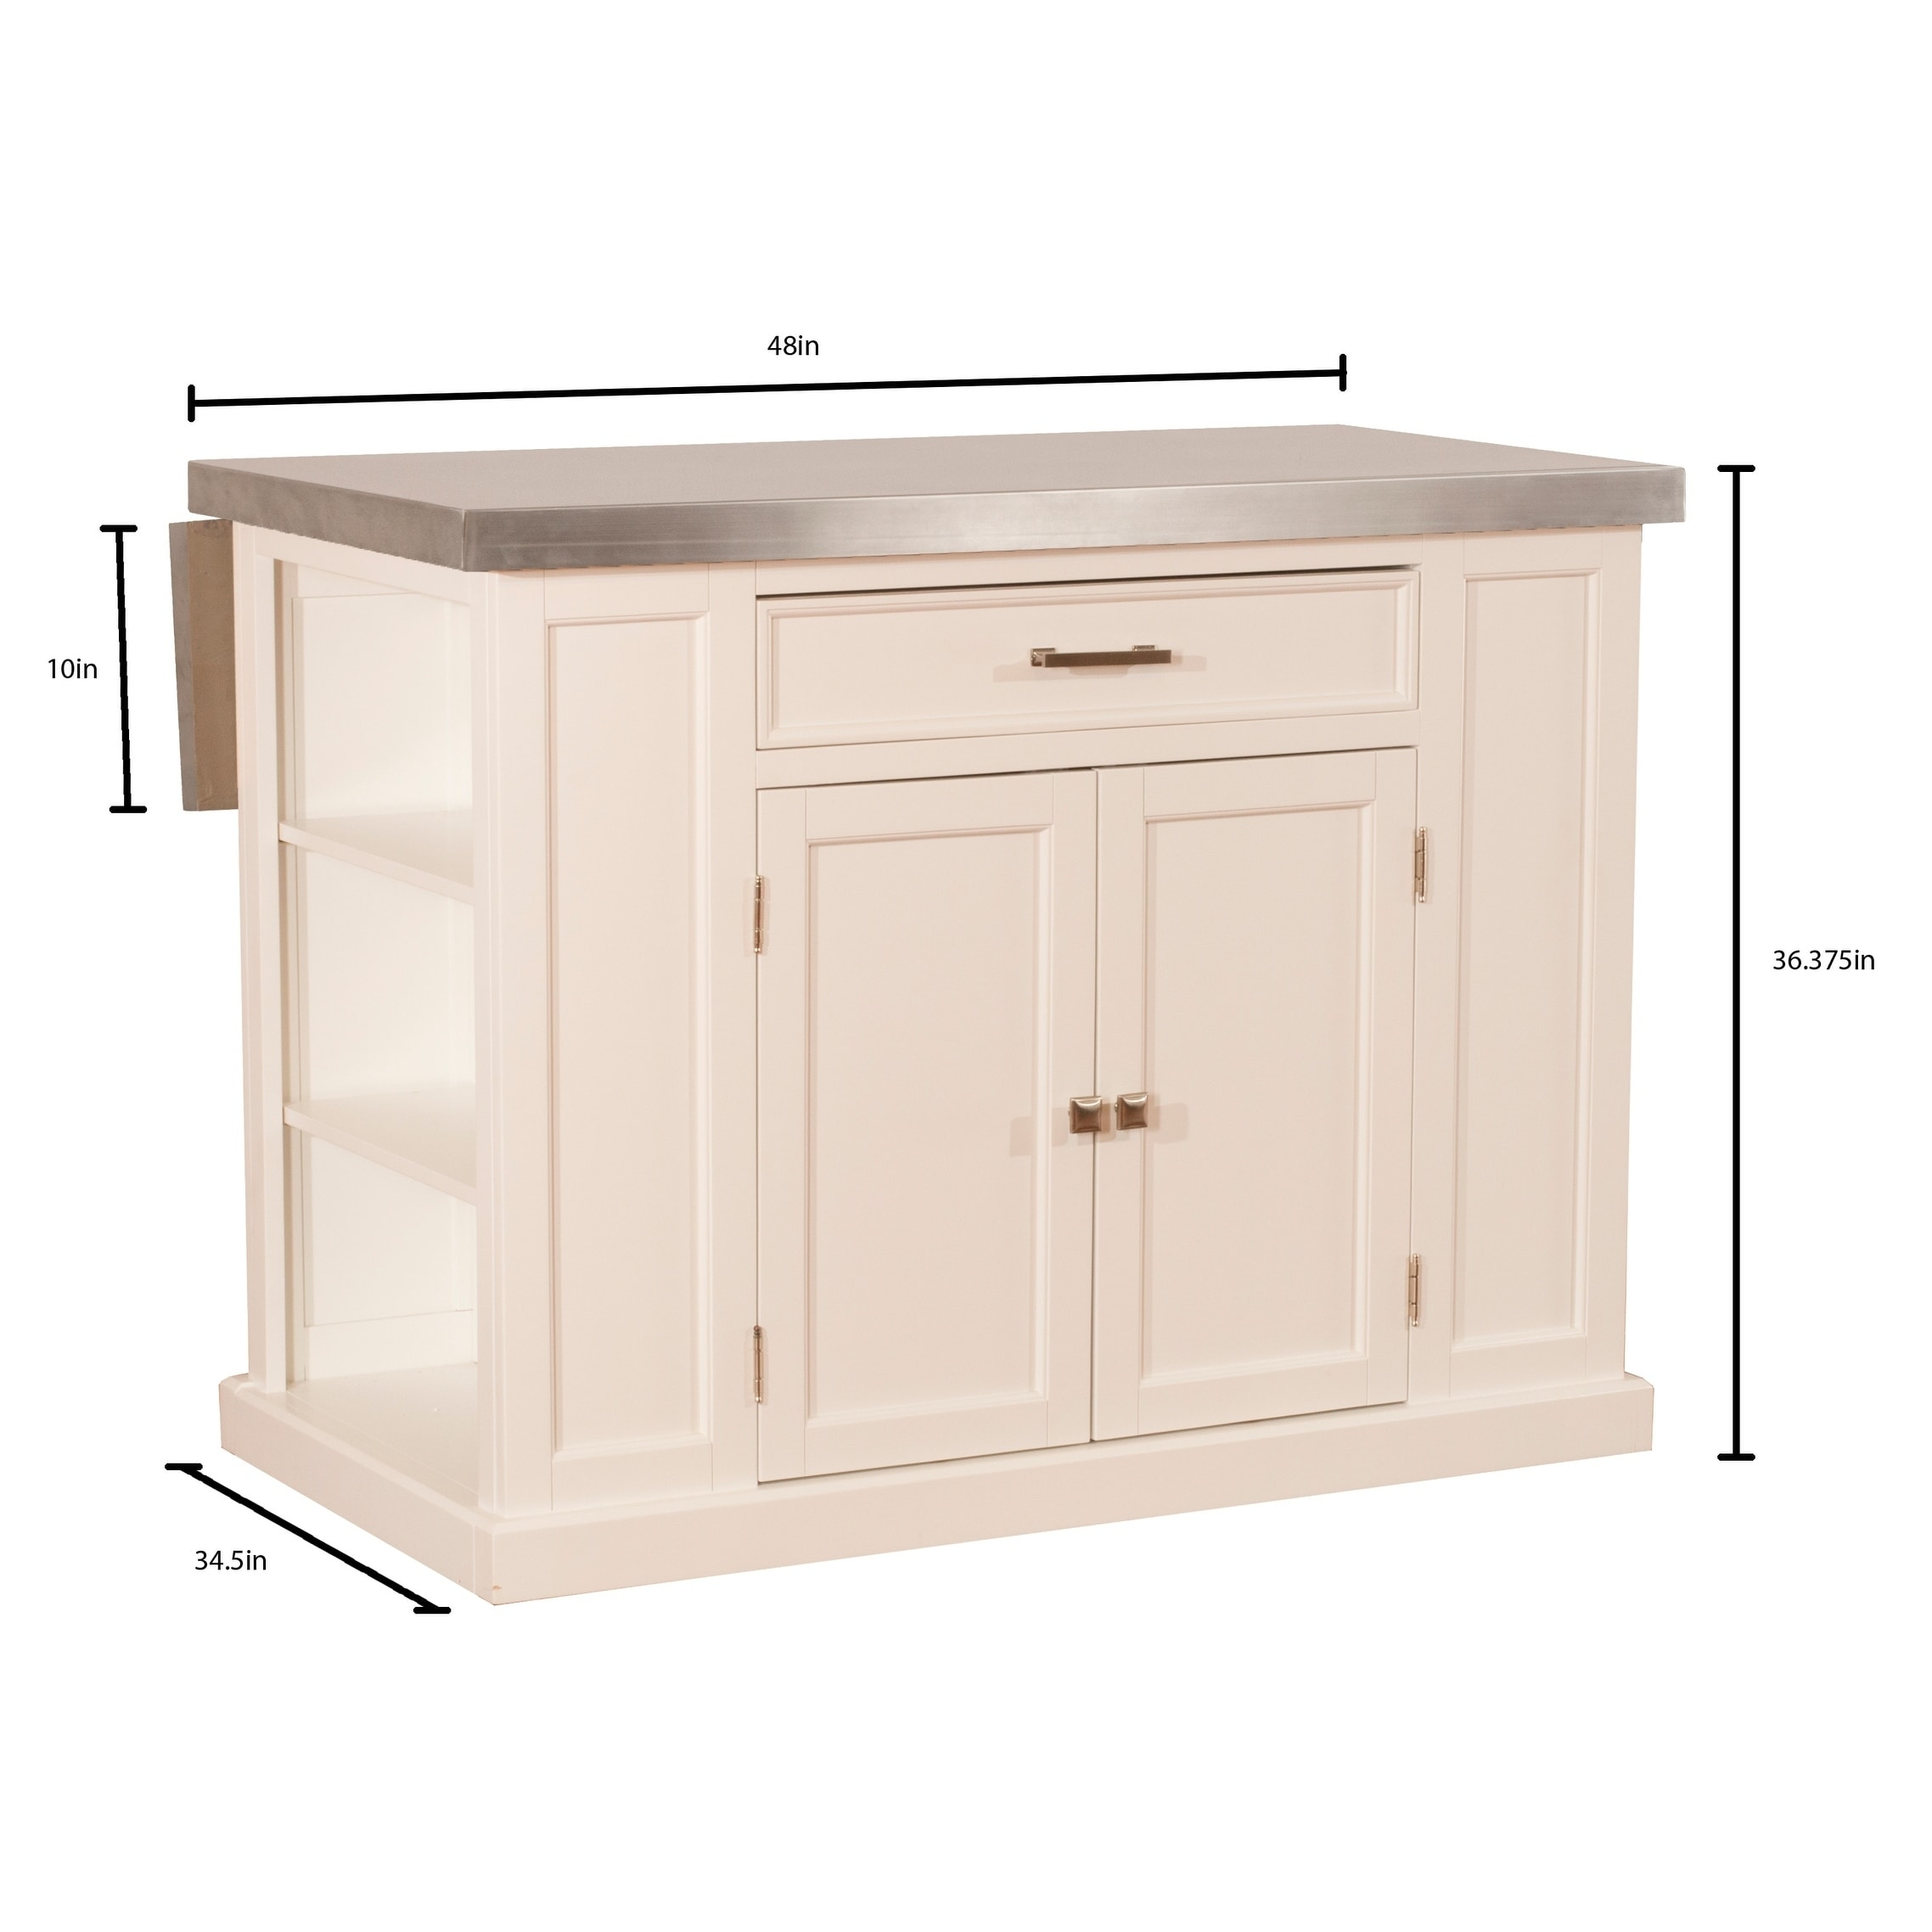 Flemington Kitchen Island In White With Stainless Steel Top By Hilale Furniture